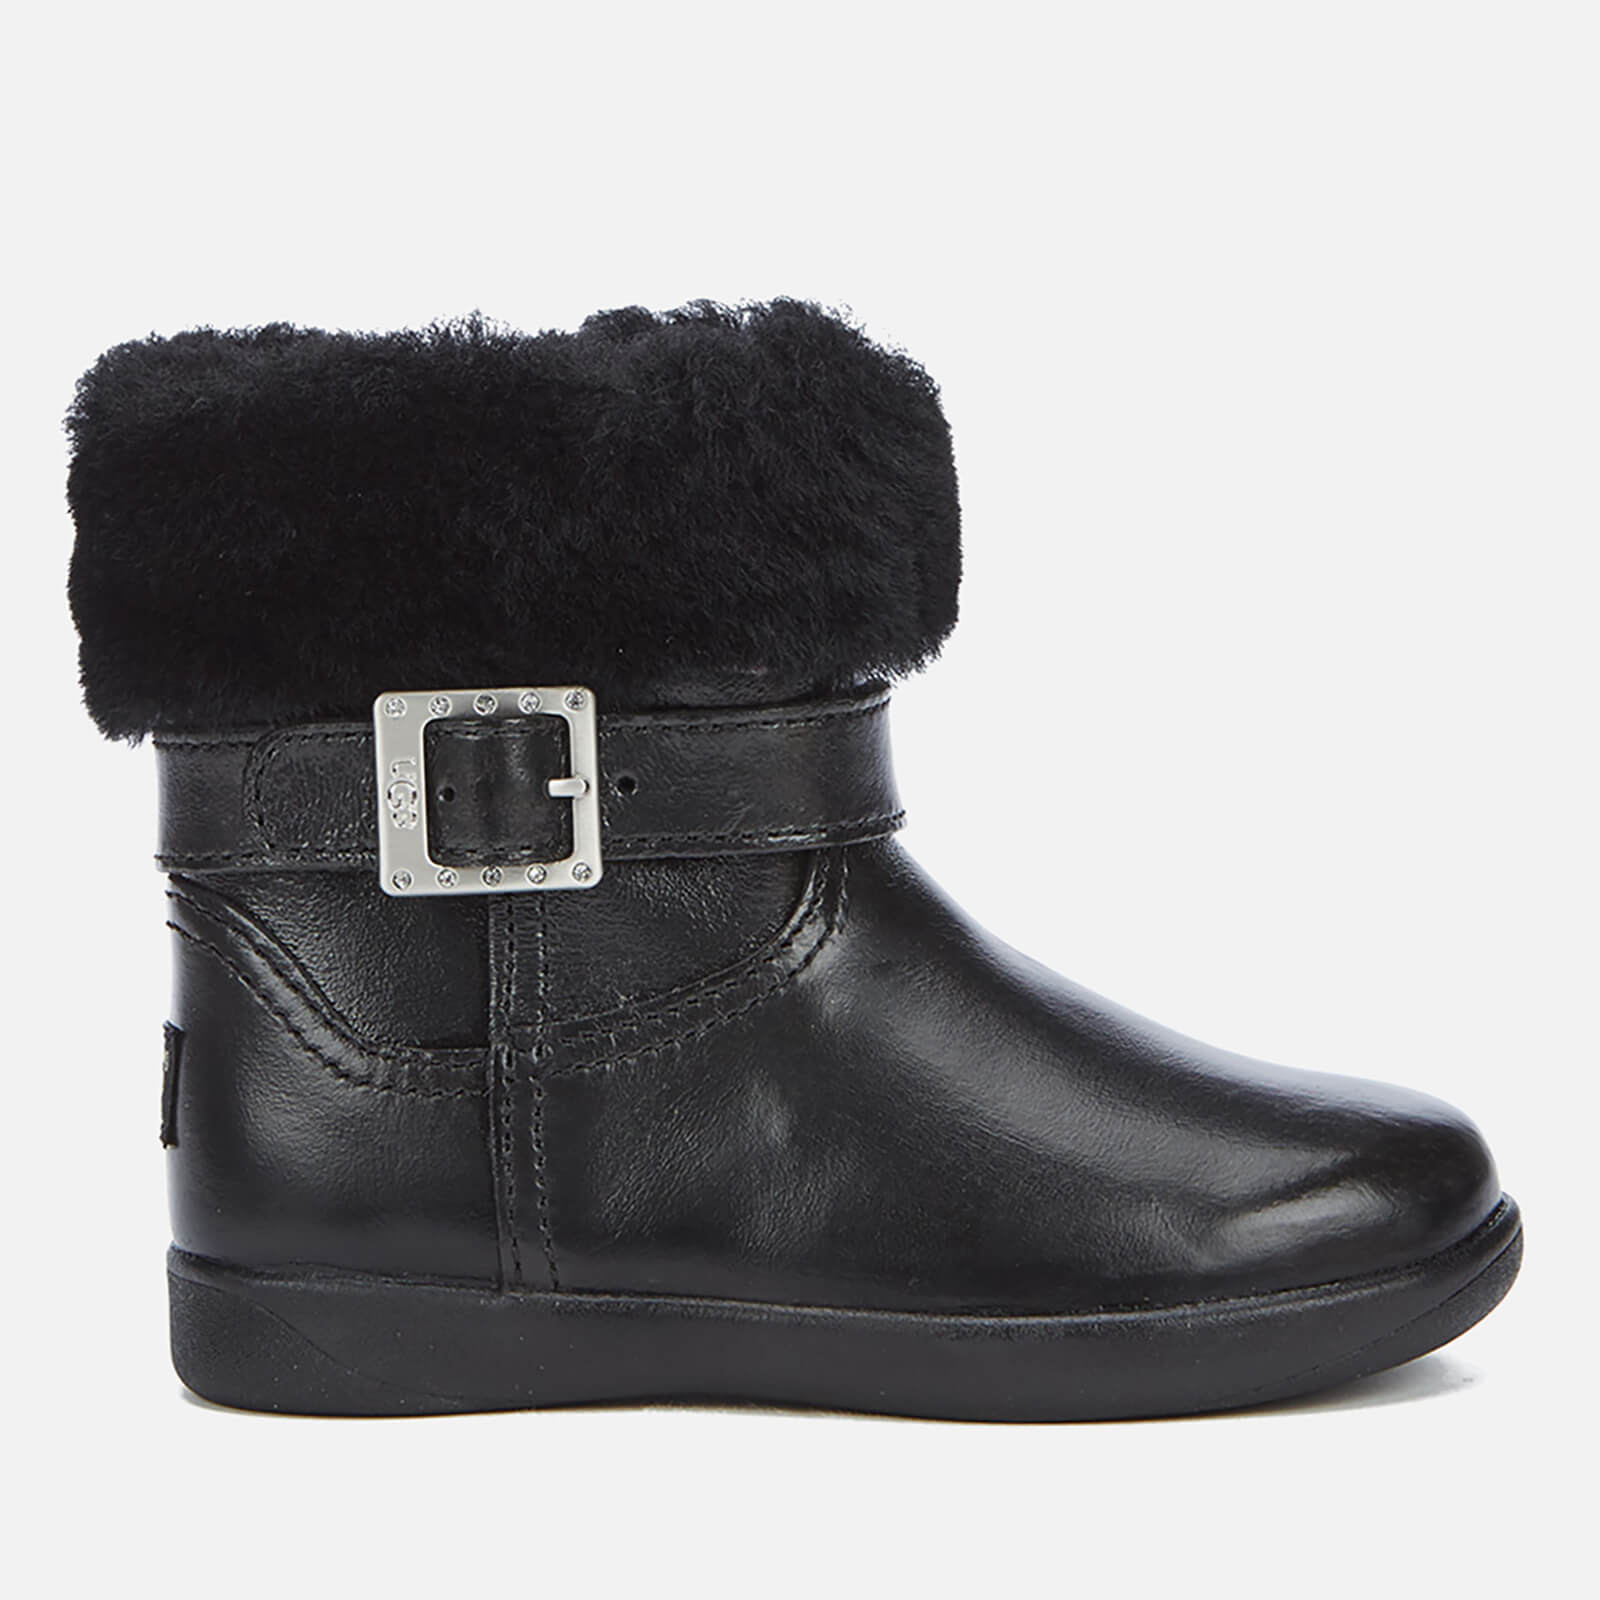 d8fd1952c6d UGG Toddlers' Gemma Patent Leather Boots - Black